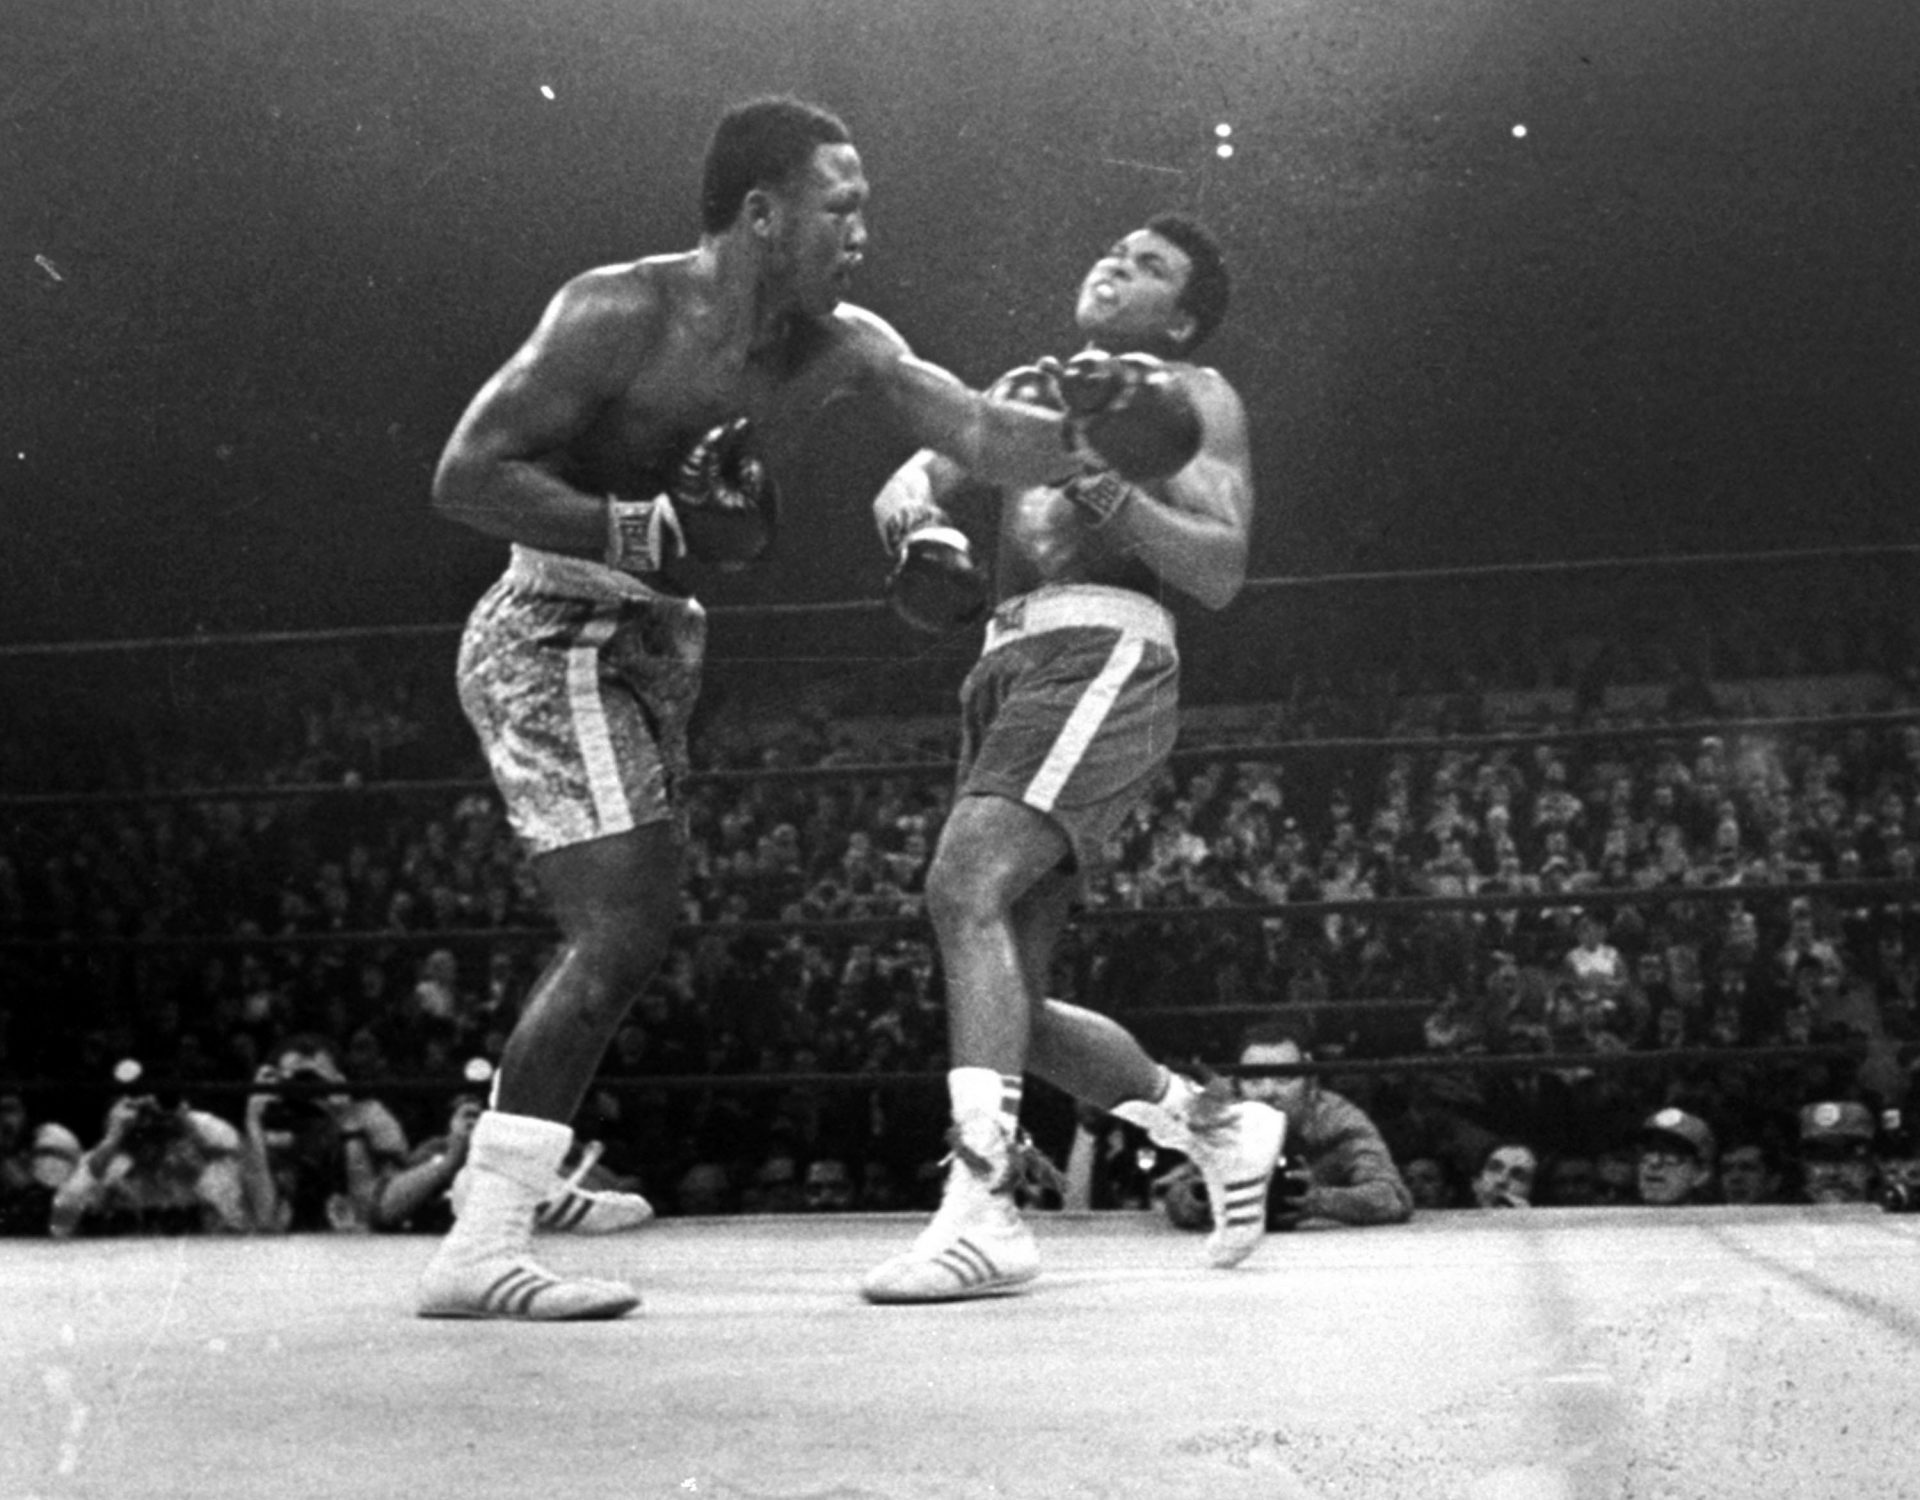 FILE PHOTO: In this March 8, 1971, file photo, boxer Joe Frazier, left, hits Muhammad Ali during the 15th round of their heavyweight title fight at New York's Madison Square Garden.